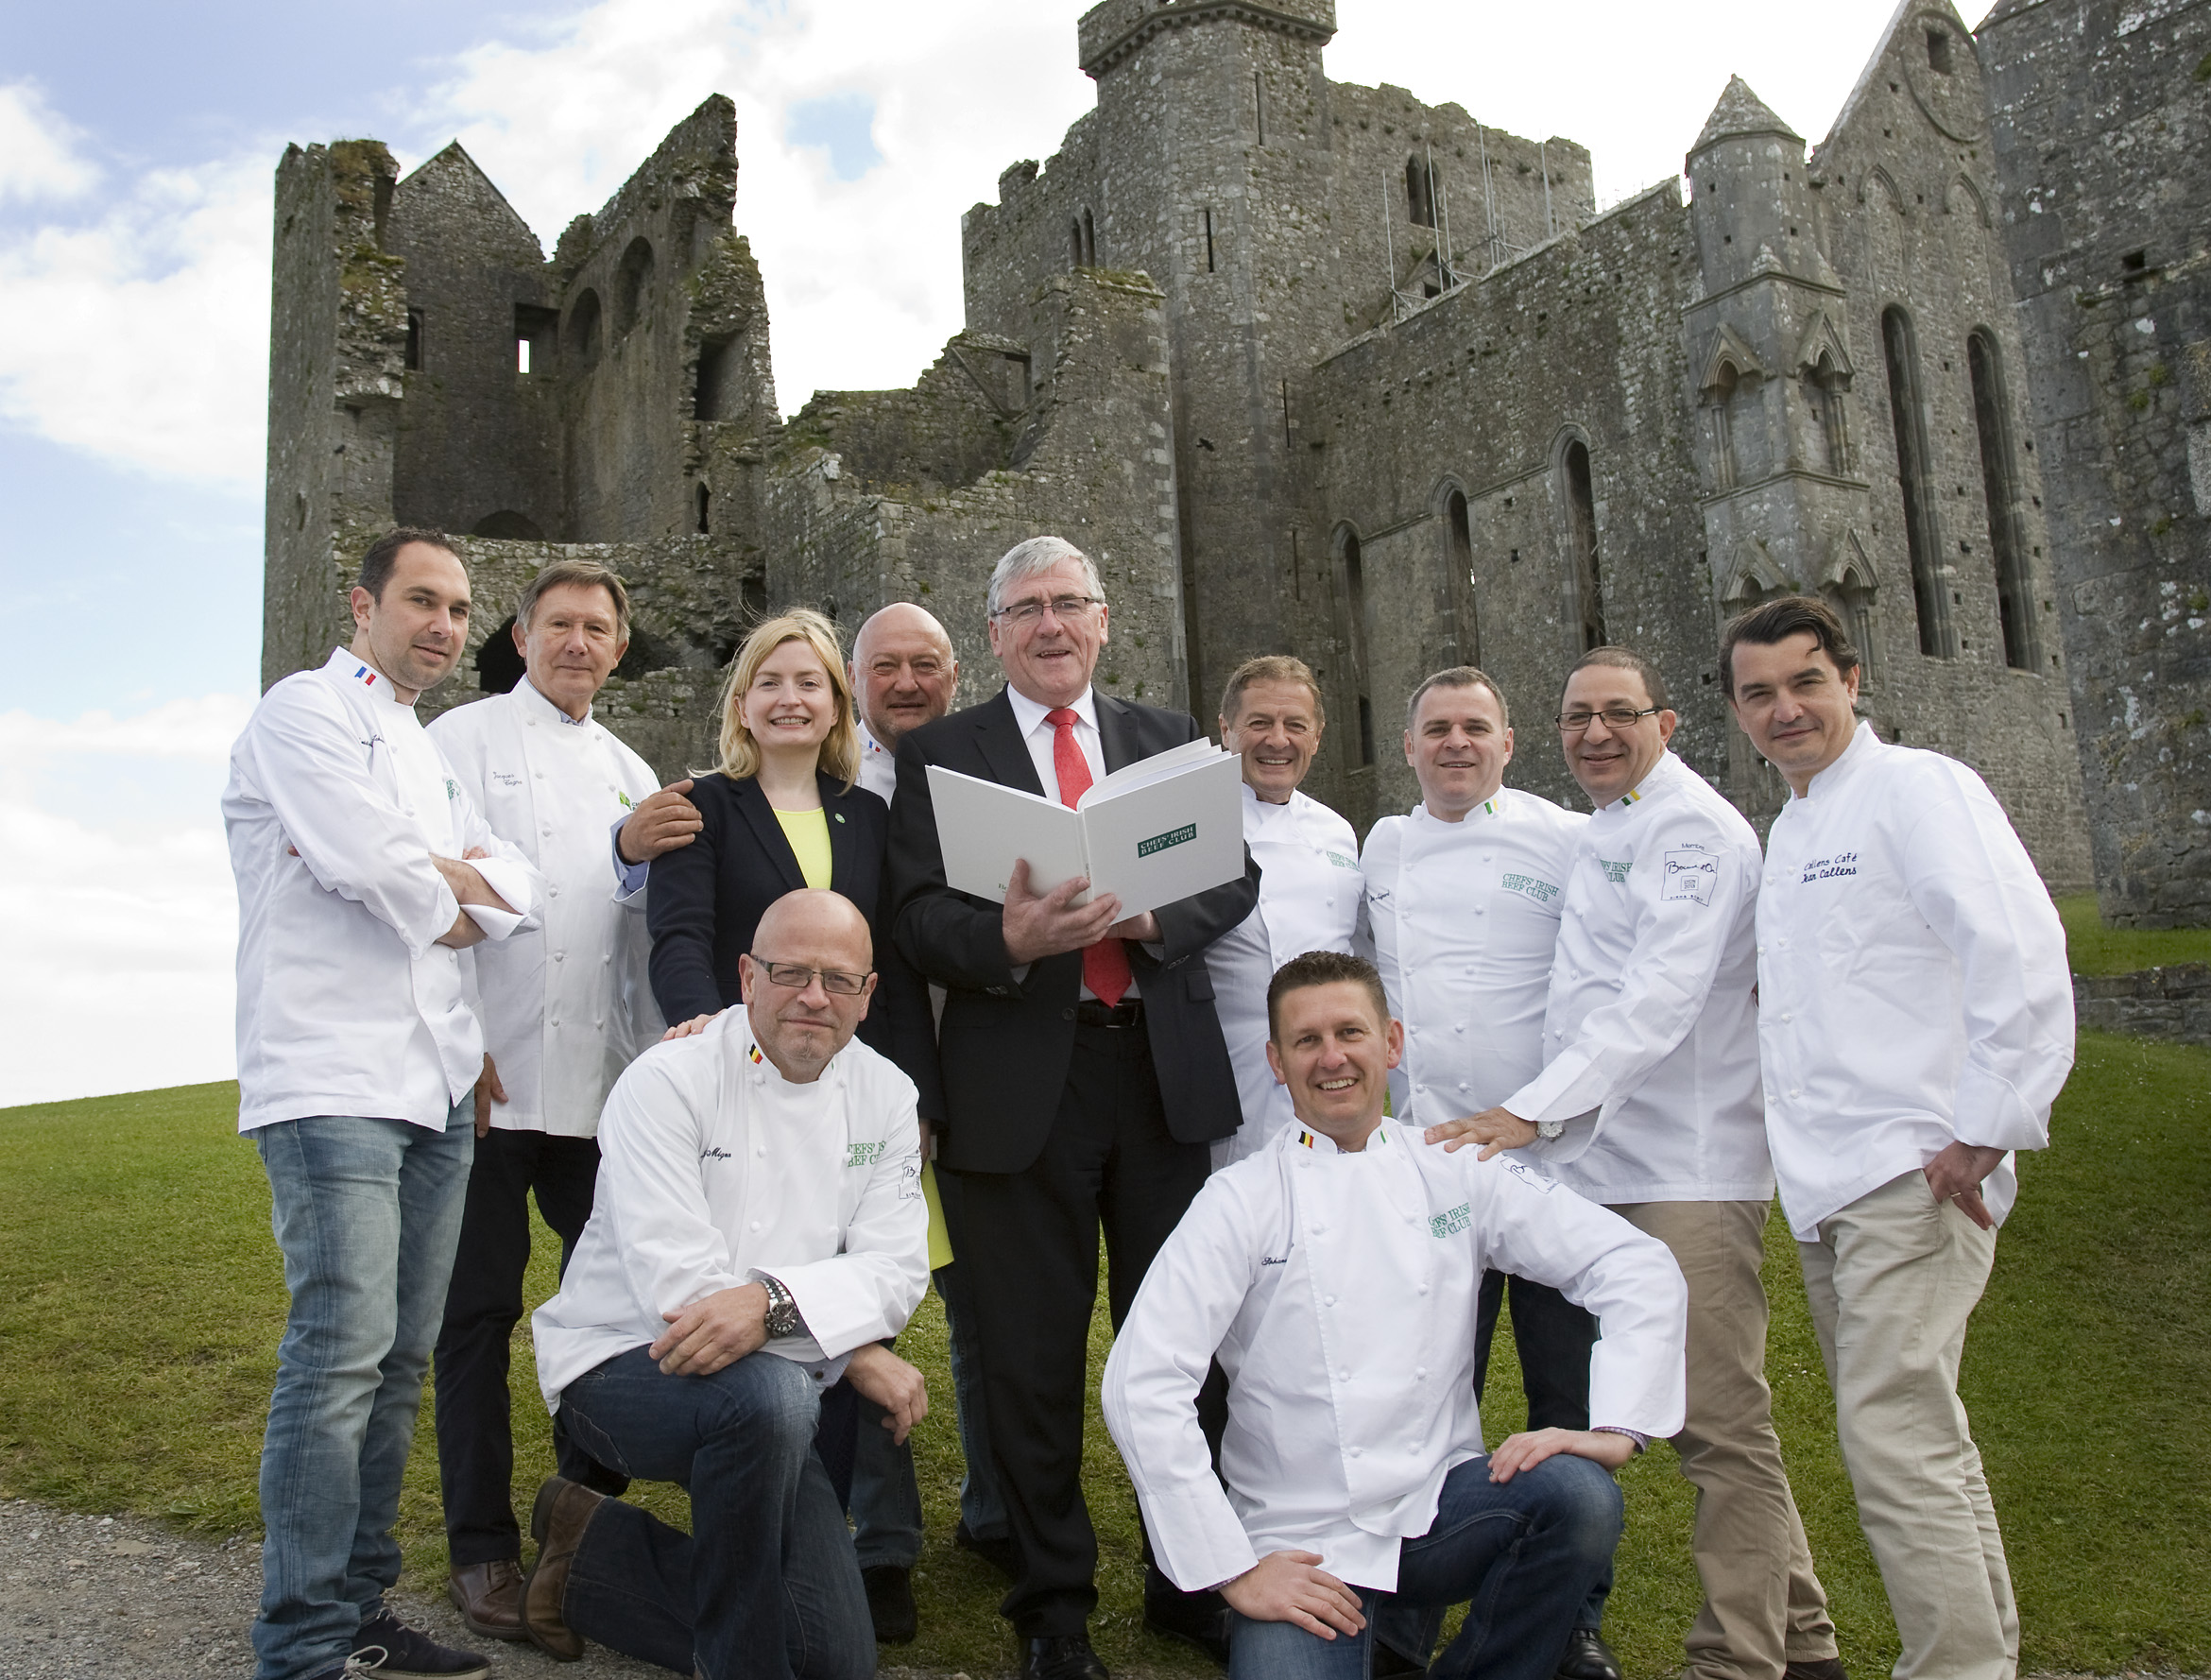 Pictured at the Rock of Cashel were Noreen Lanigan, Bord Bia's French Office Manager and Tom Hayes, Minister of State at the Department of Agriculture, Food and the Marine with the group of French and Belgian award winning and Michelin Starred chefs.